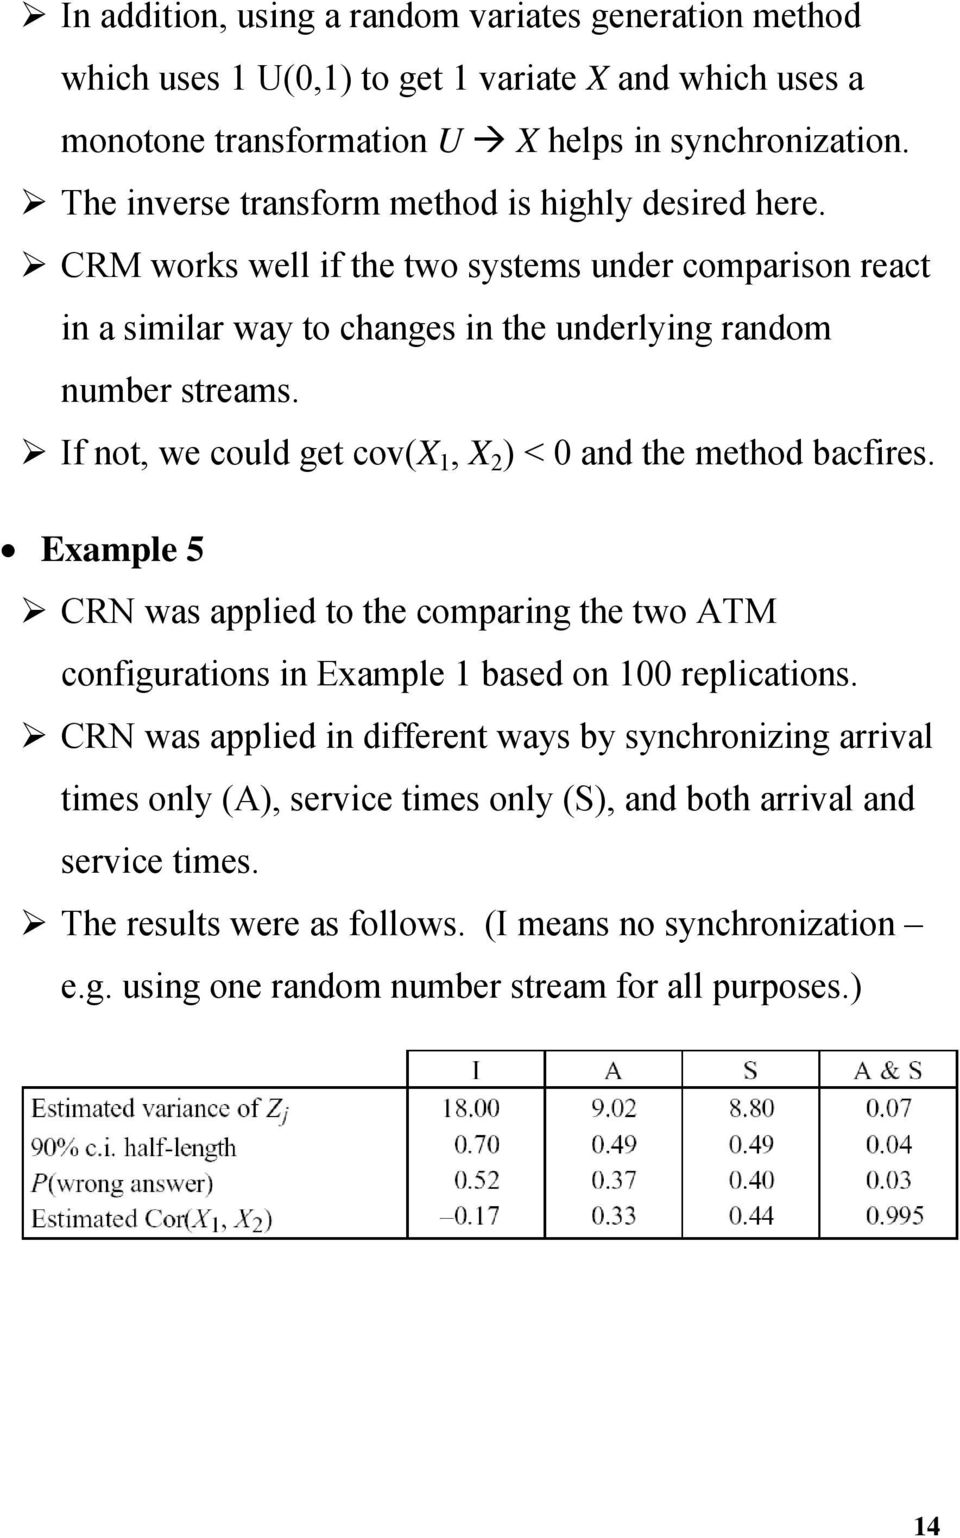 If ot, we could get cov(x 1, X ) < 0 ad the method bacfires. Example 5 CRN was applied to the comparig the two ATM cofiguratios i Example 1 based o 100 replicatios.